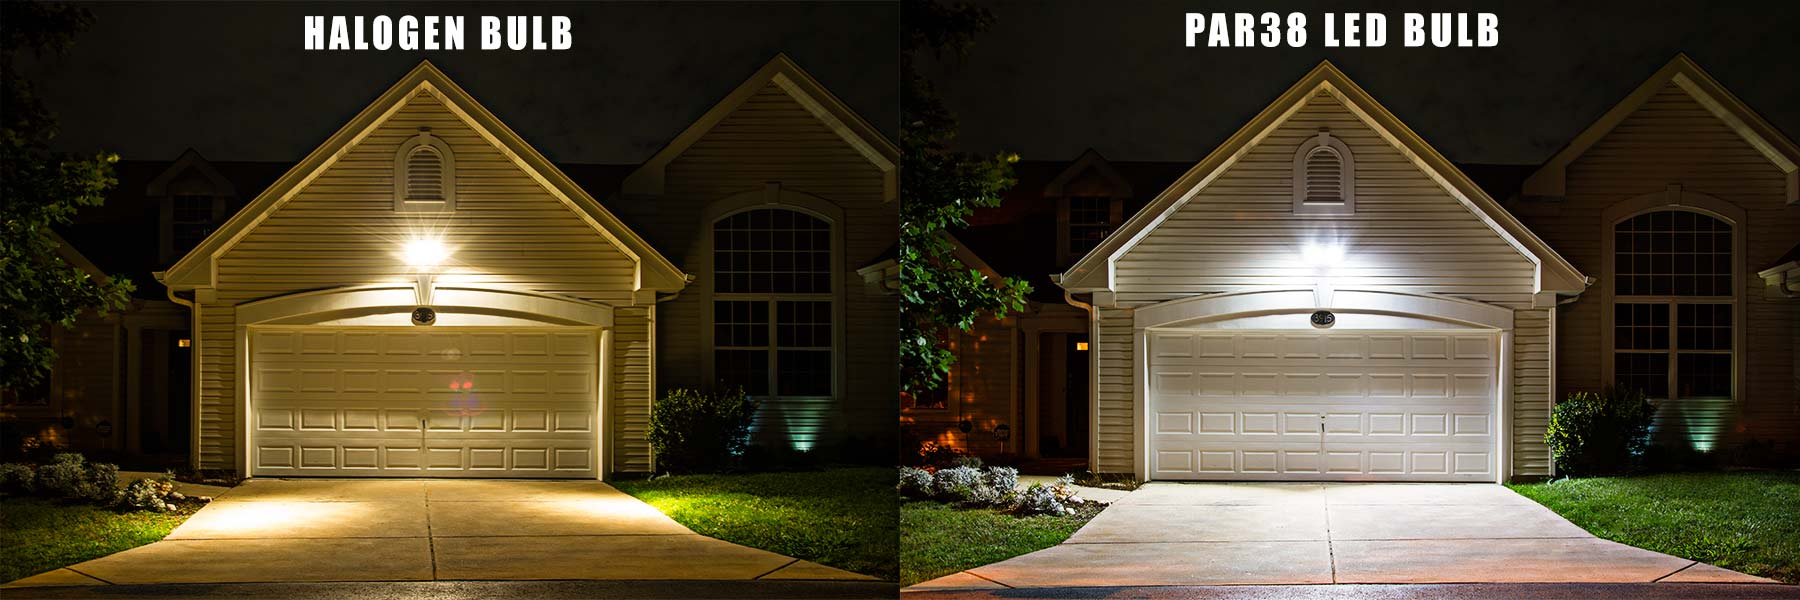 halogen versus led light & Is LED Landscape Lighting Really Worth the Cost? u2013 Total Sprinkler ...